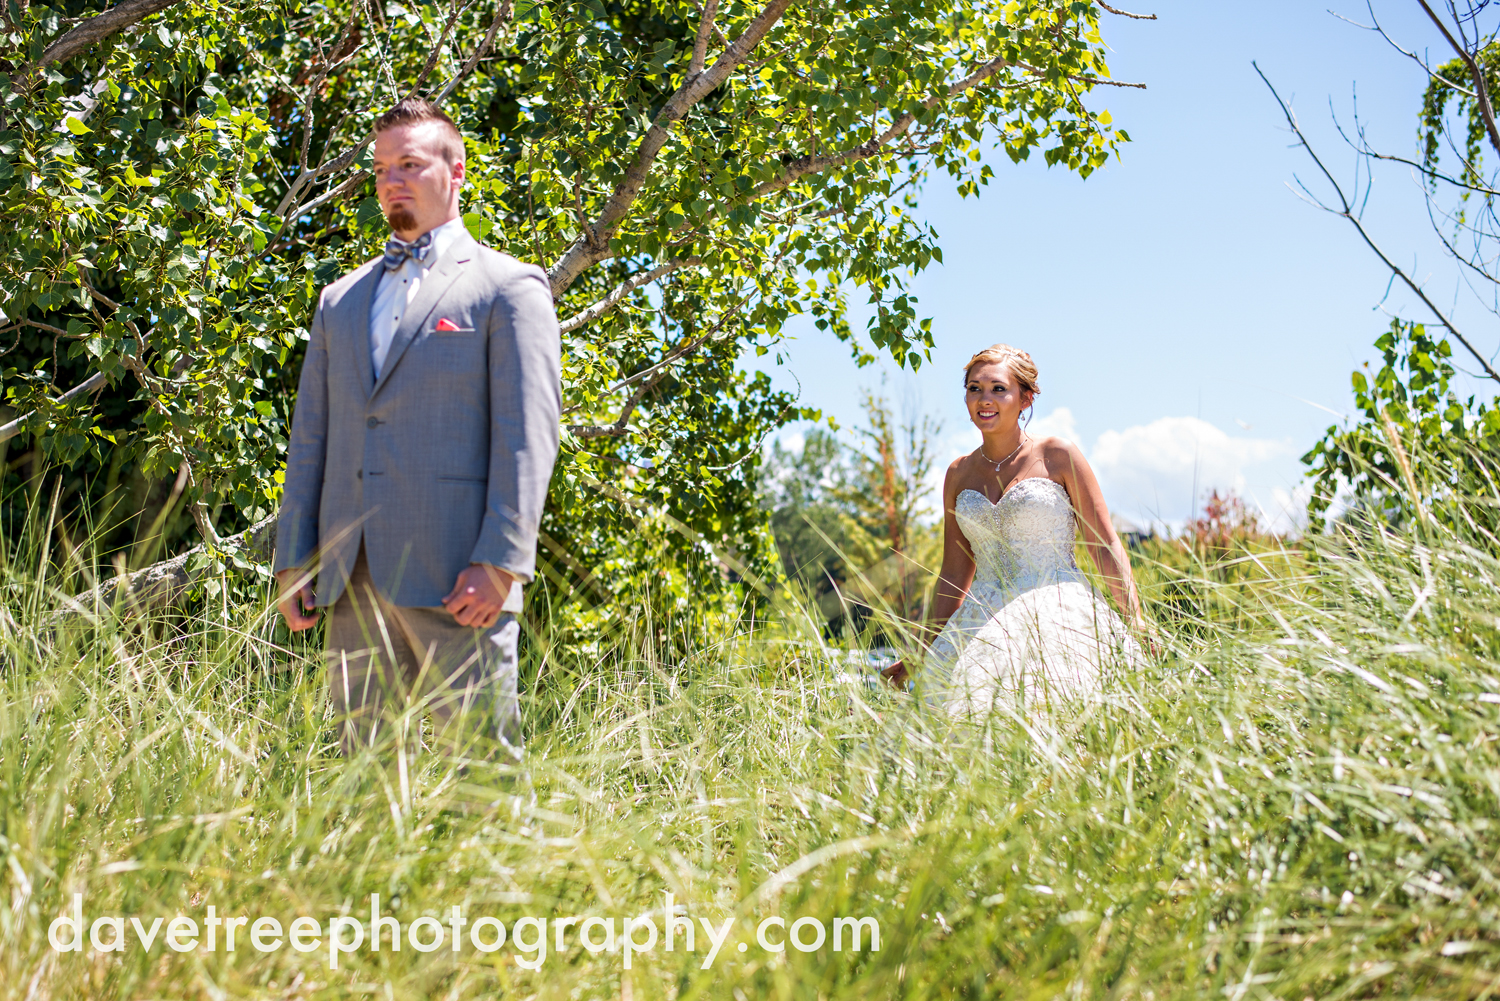 veranda_wedding_photographer_st_joseph_wedding_143.jpg